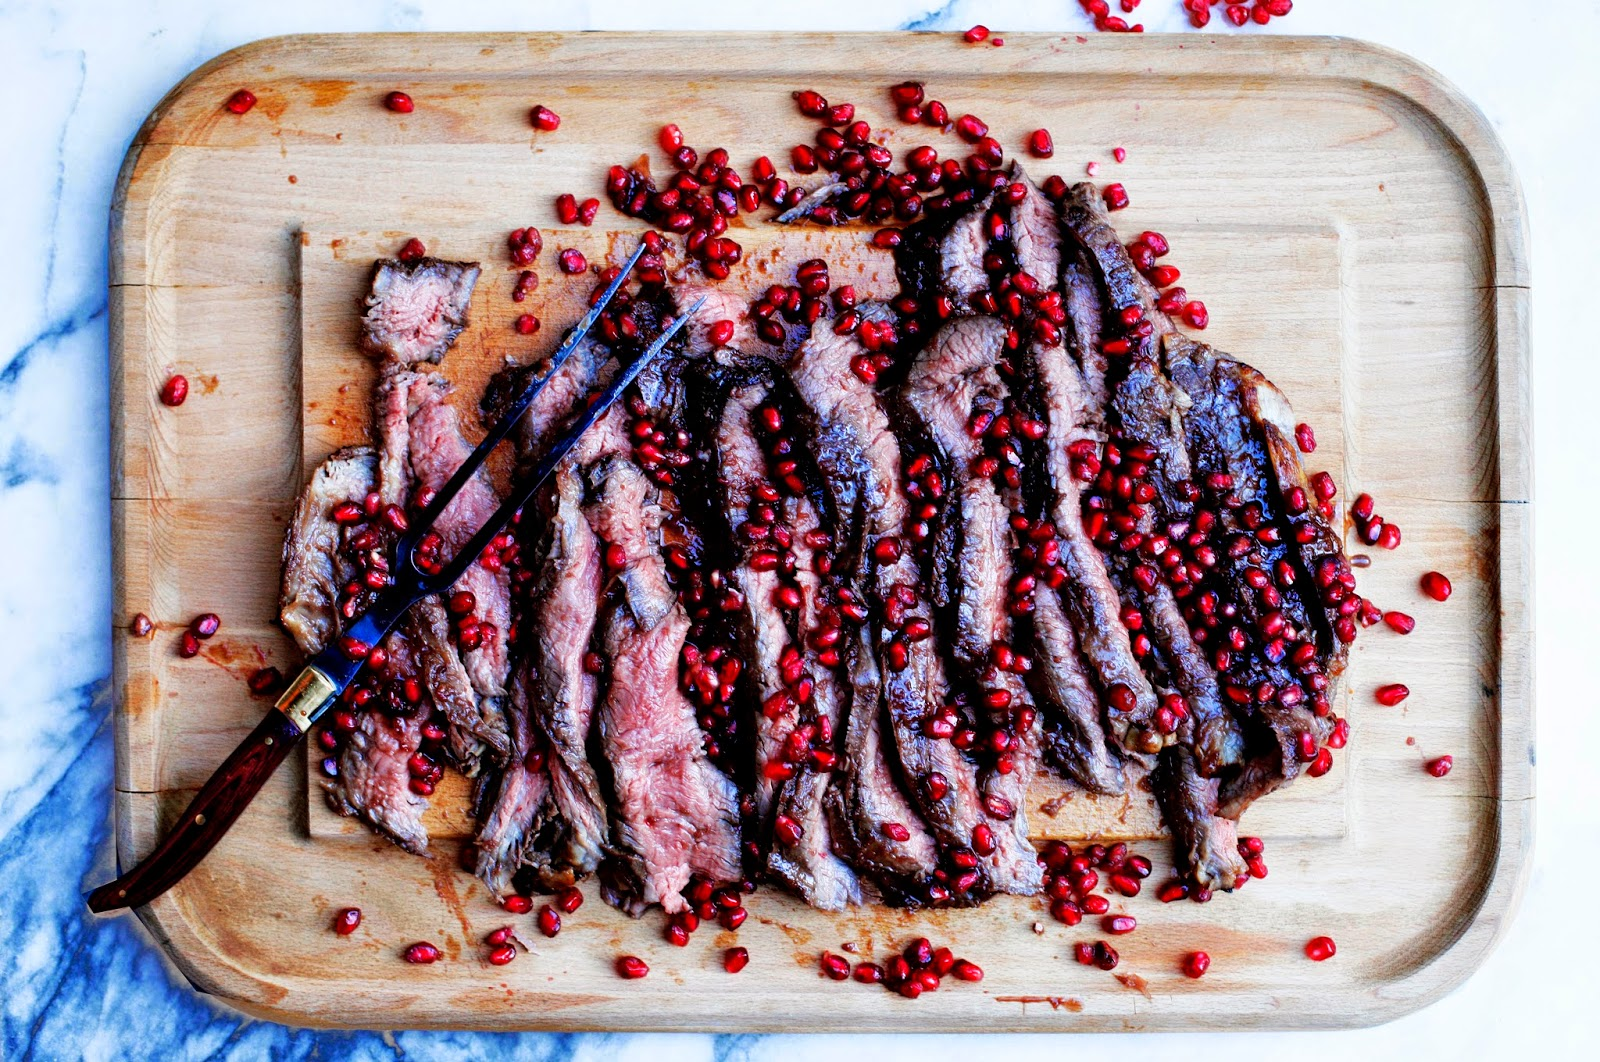 http://food52.com/recipes/31870-pomegranate-flank-steak